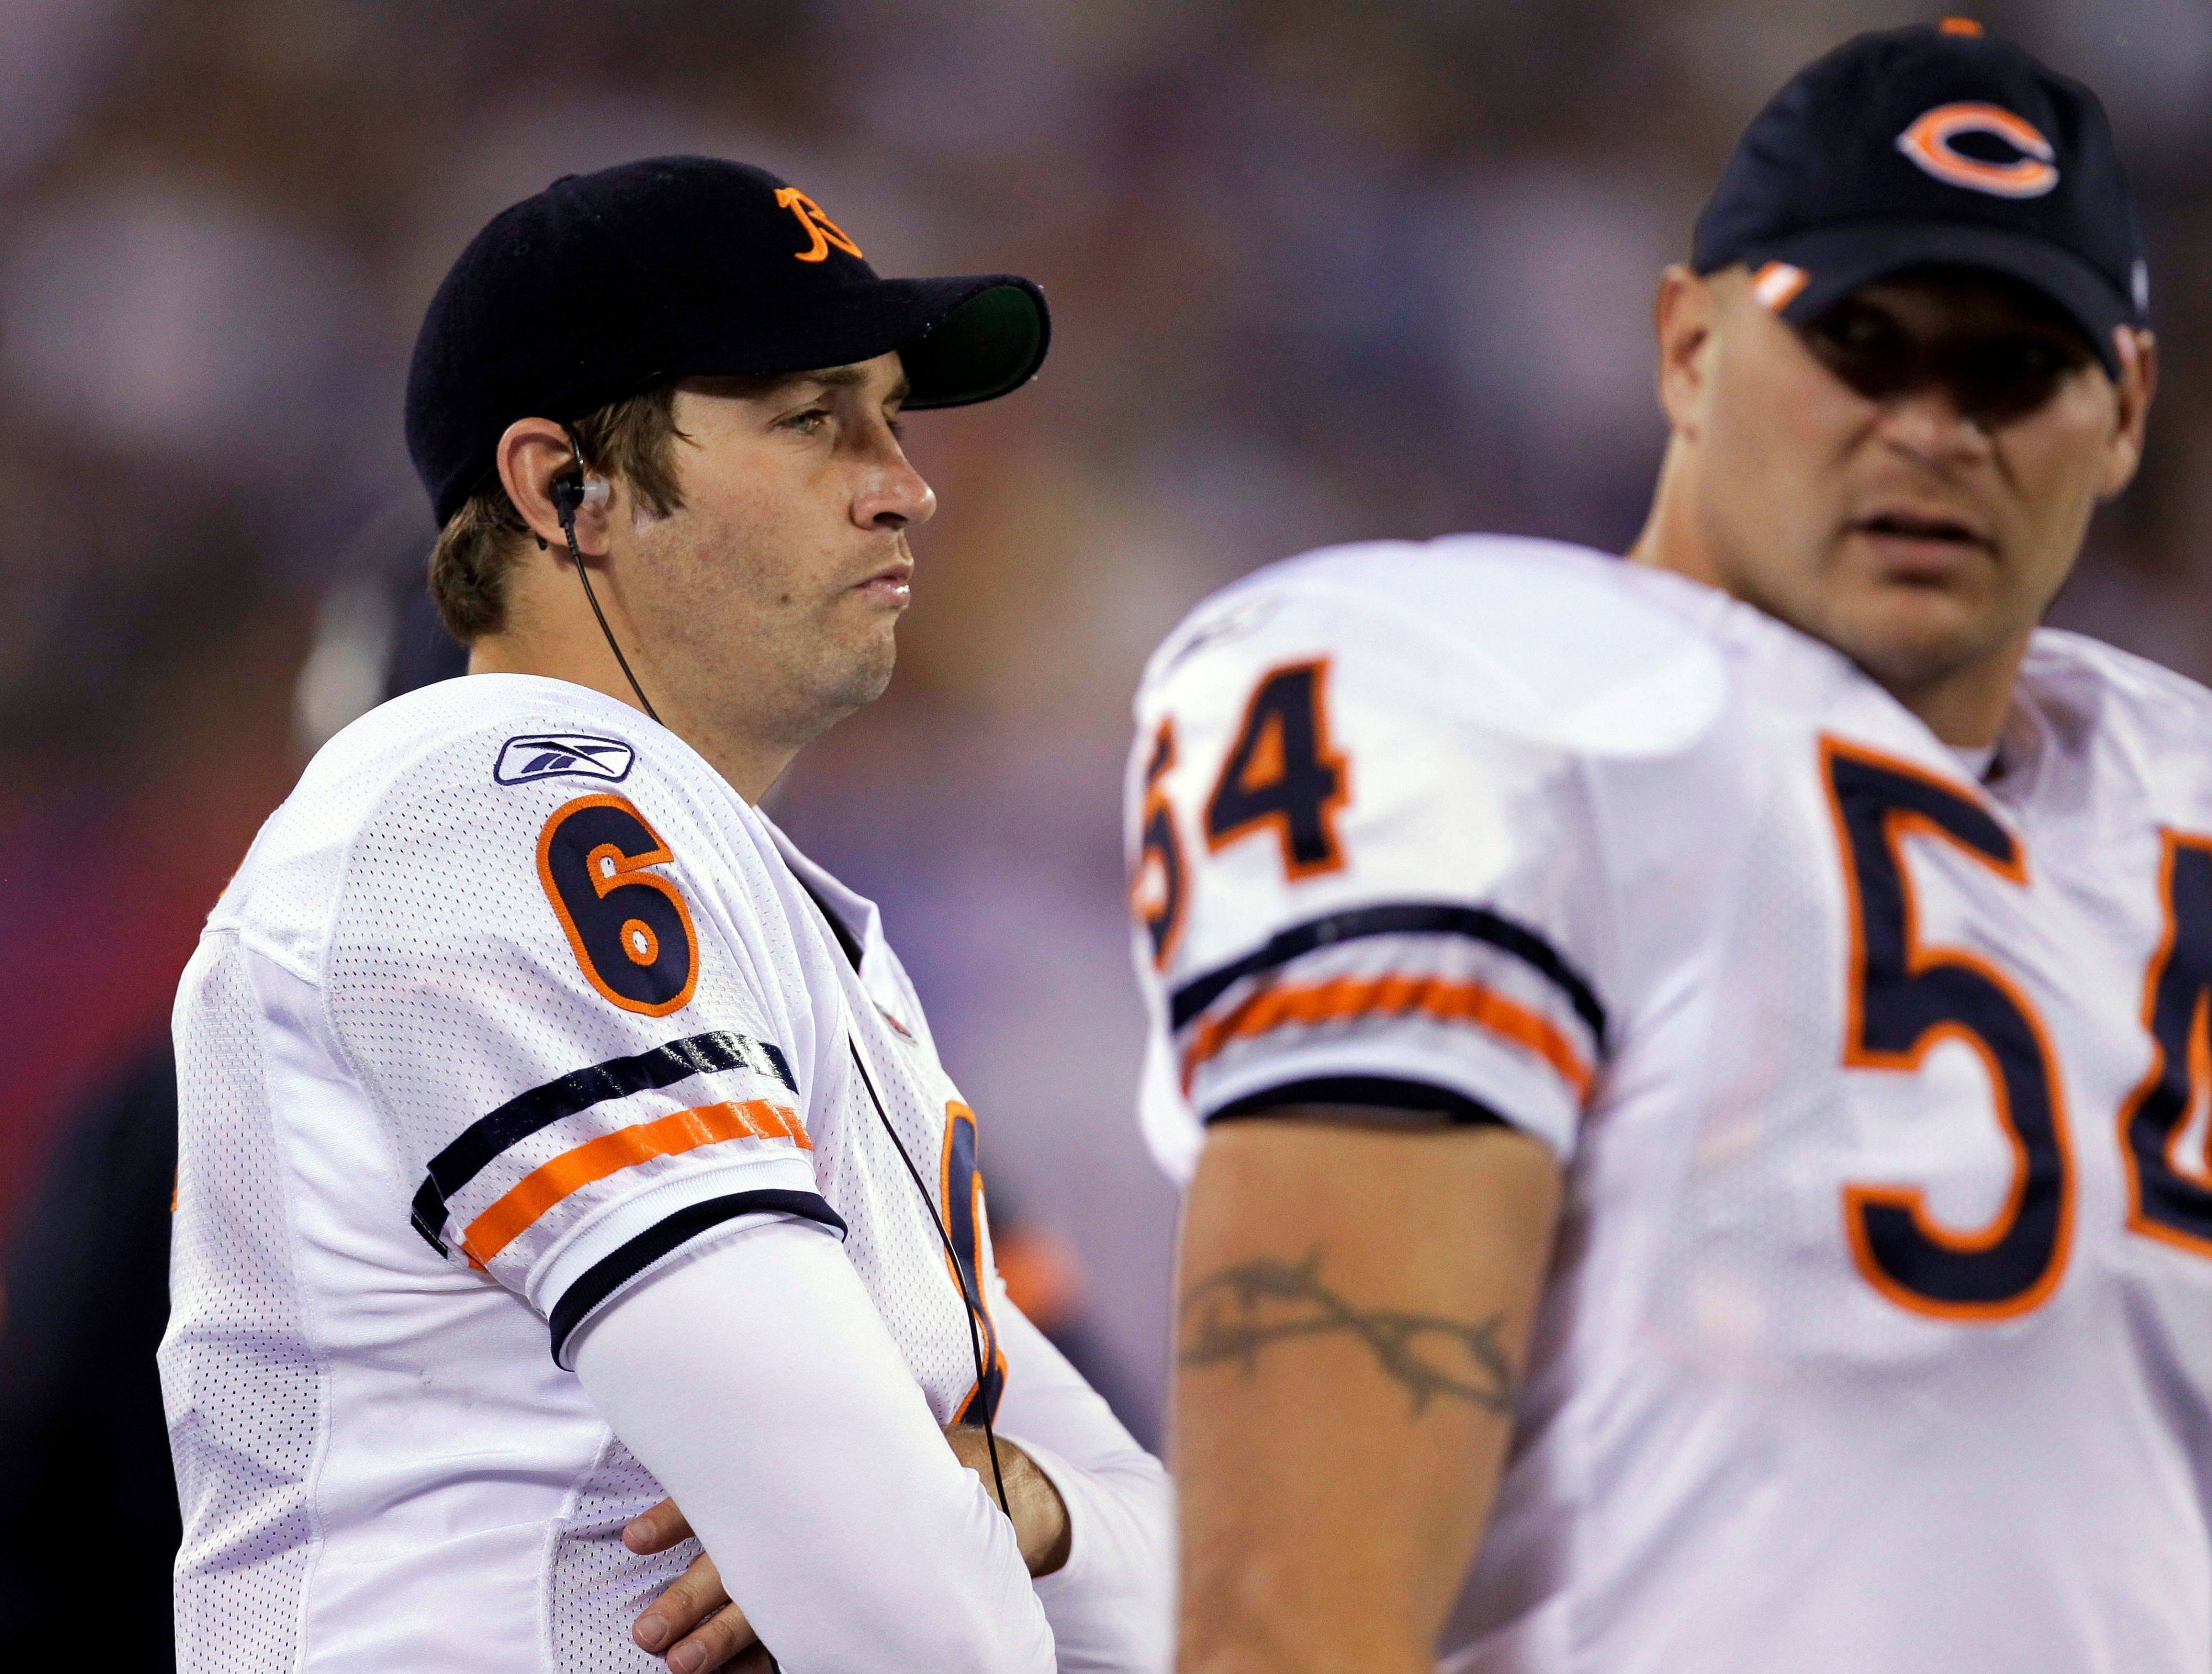 Jay Cutler and teammate Brian Urlacher stand on the sideline during the Bears' preseason game against the Giants. Cutler understands Mike Martz's offense much better this year and has no problems telling teammates when they do something wrong.